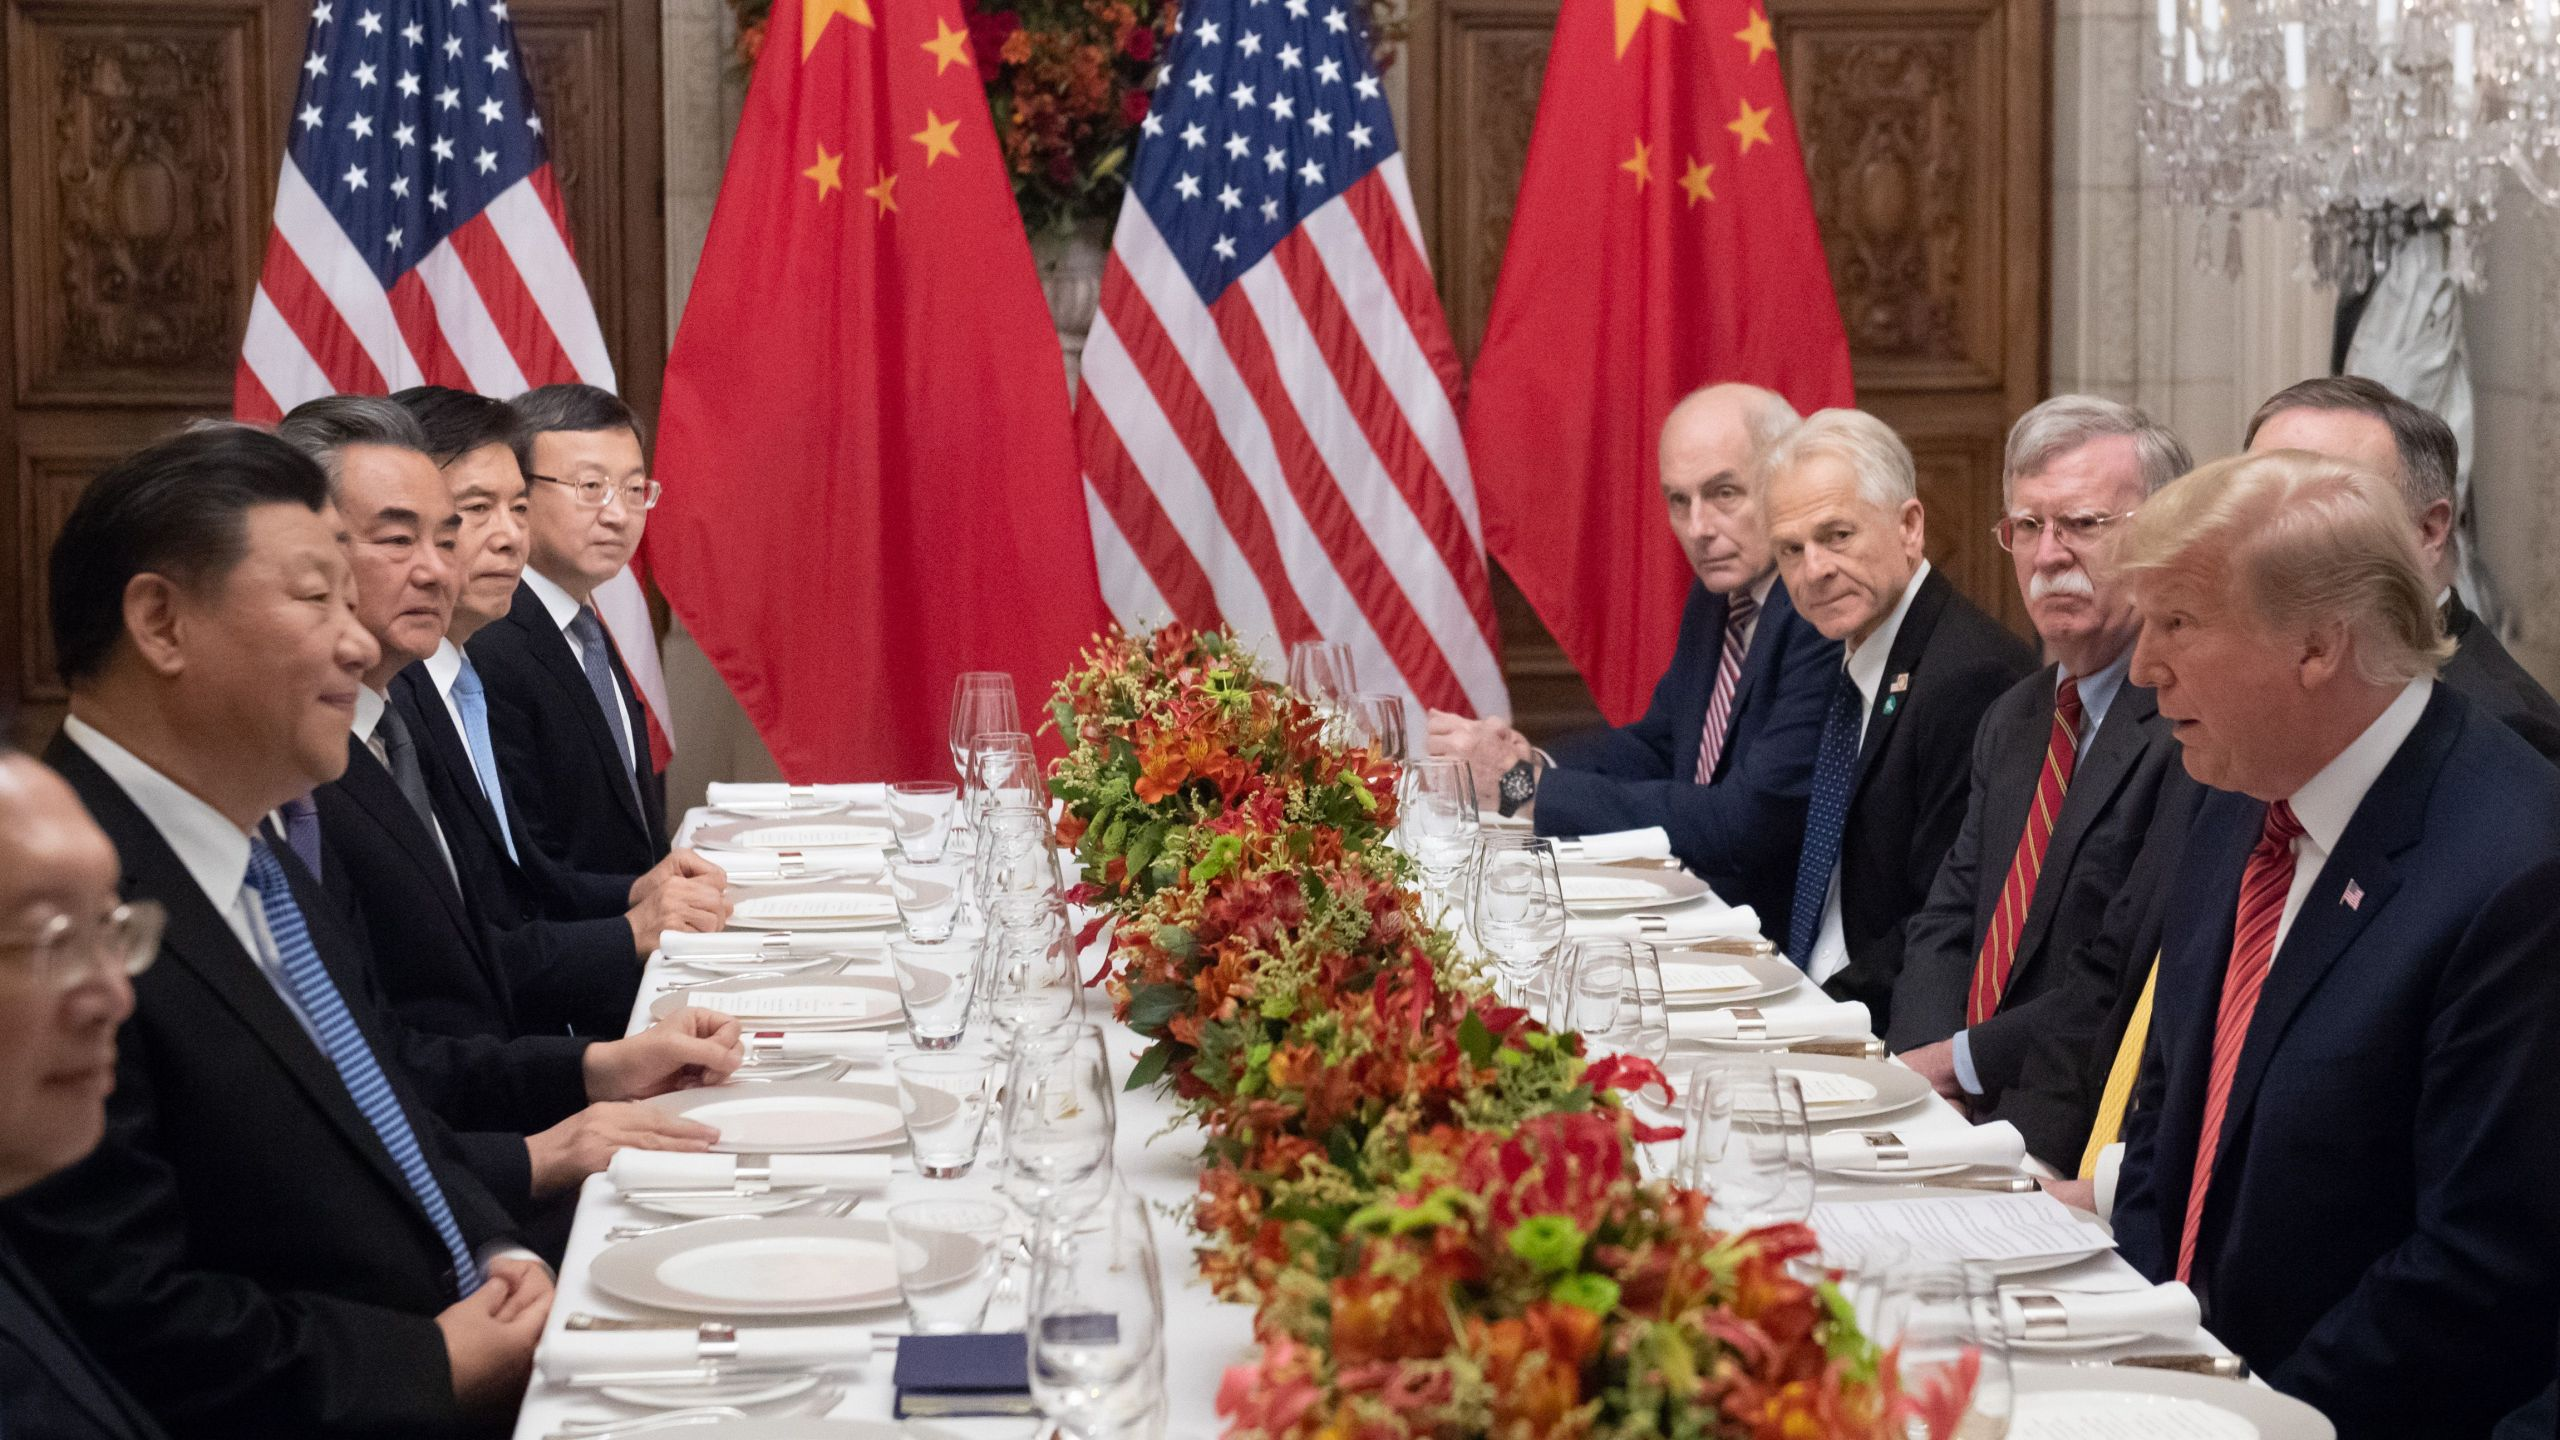 US President Donald Trump (R) and China's President Xi Jinping (L) along with members of their delegations, hold a dinner meeting at the end of the G20 Leaders' Summit in Buenos Aires, on December 01, 2018. (Credit: Saul Loeb/AFP/Getty Images)